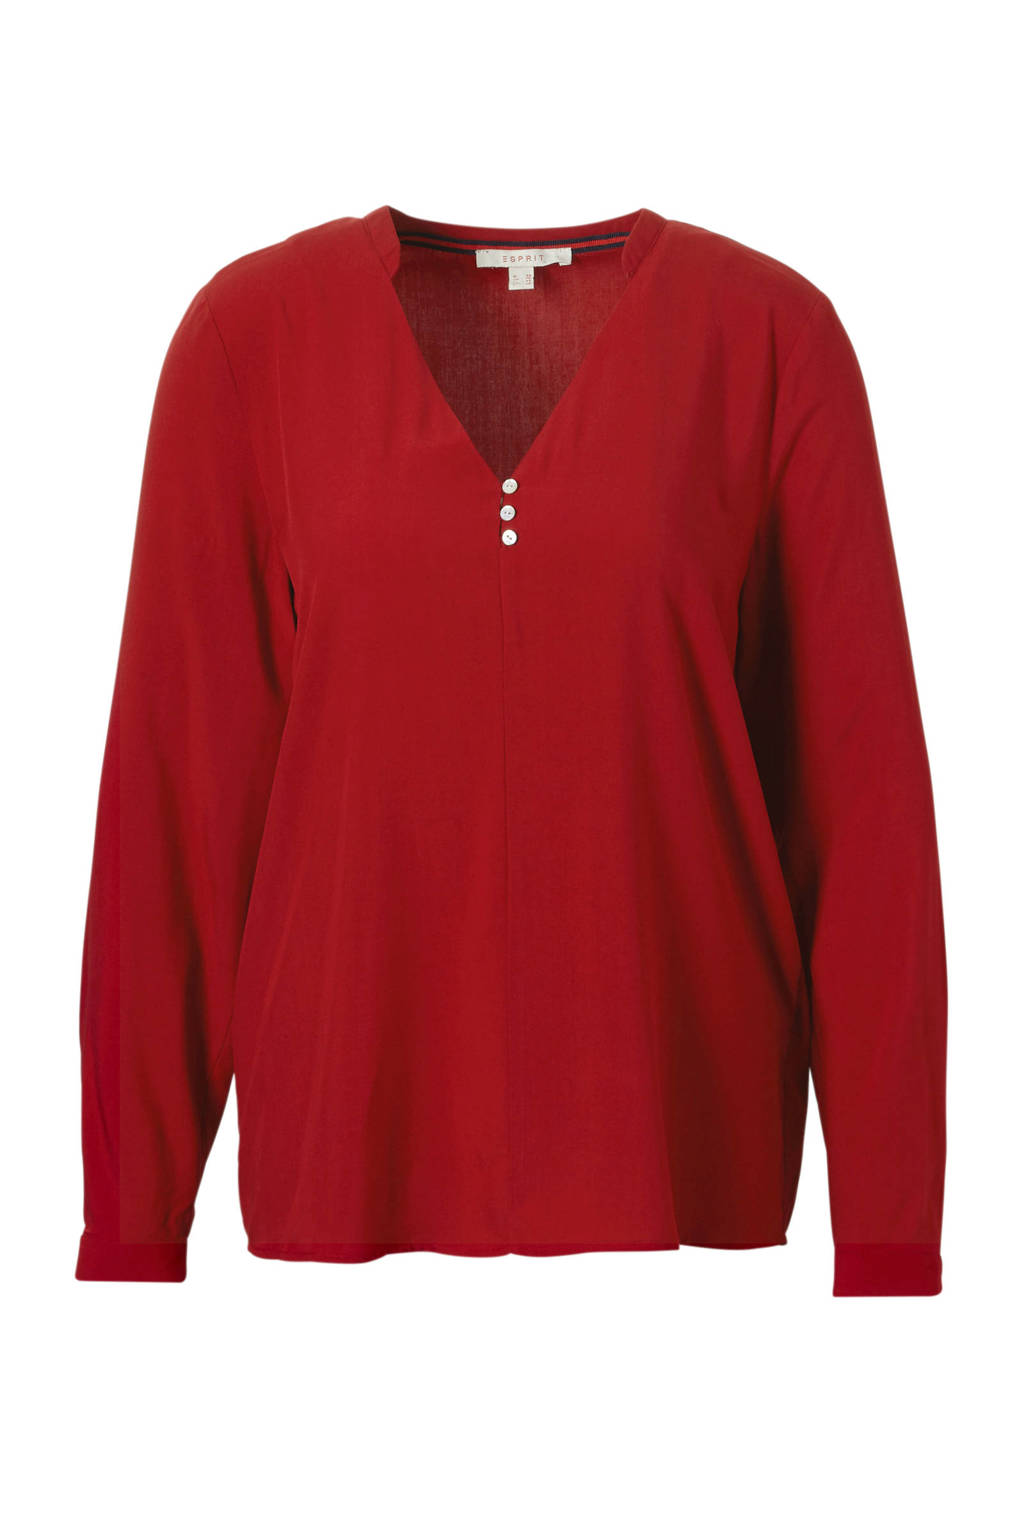 ESPRIT Women Casual blouse rood, Rood